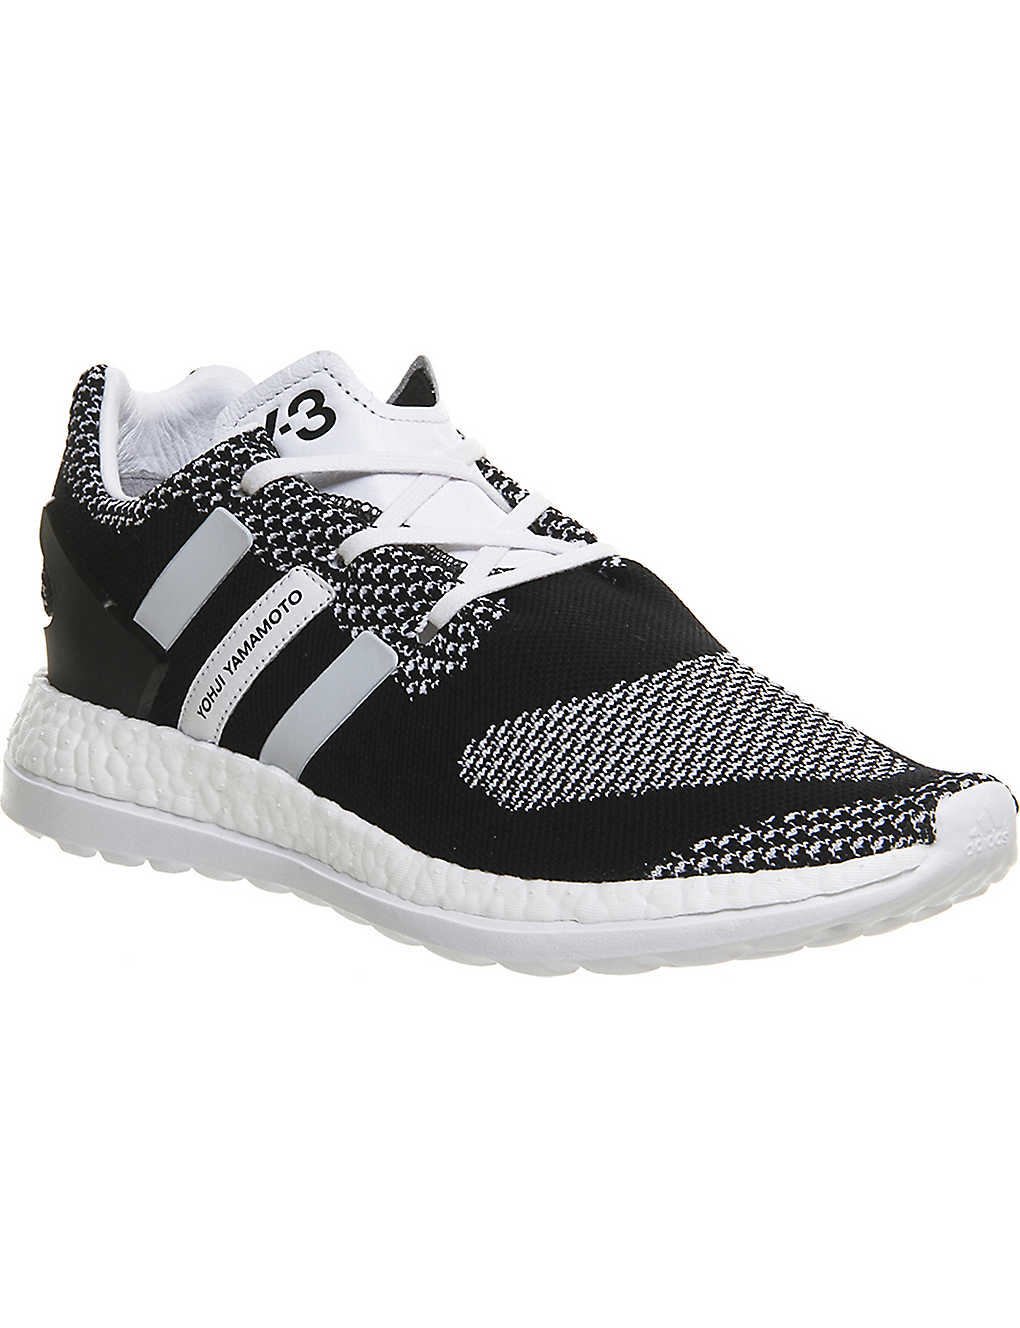 new style 20d78 37d38 ... Pure Boost ZG Primeknit trainers ...